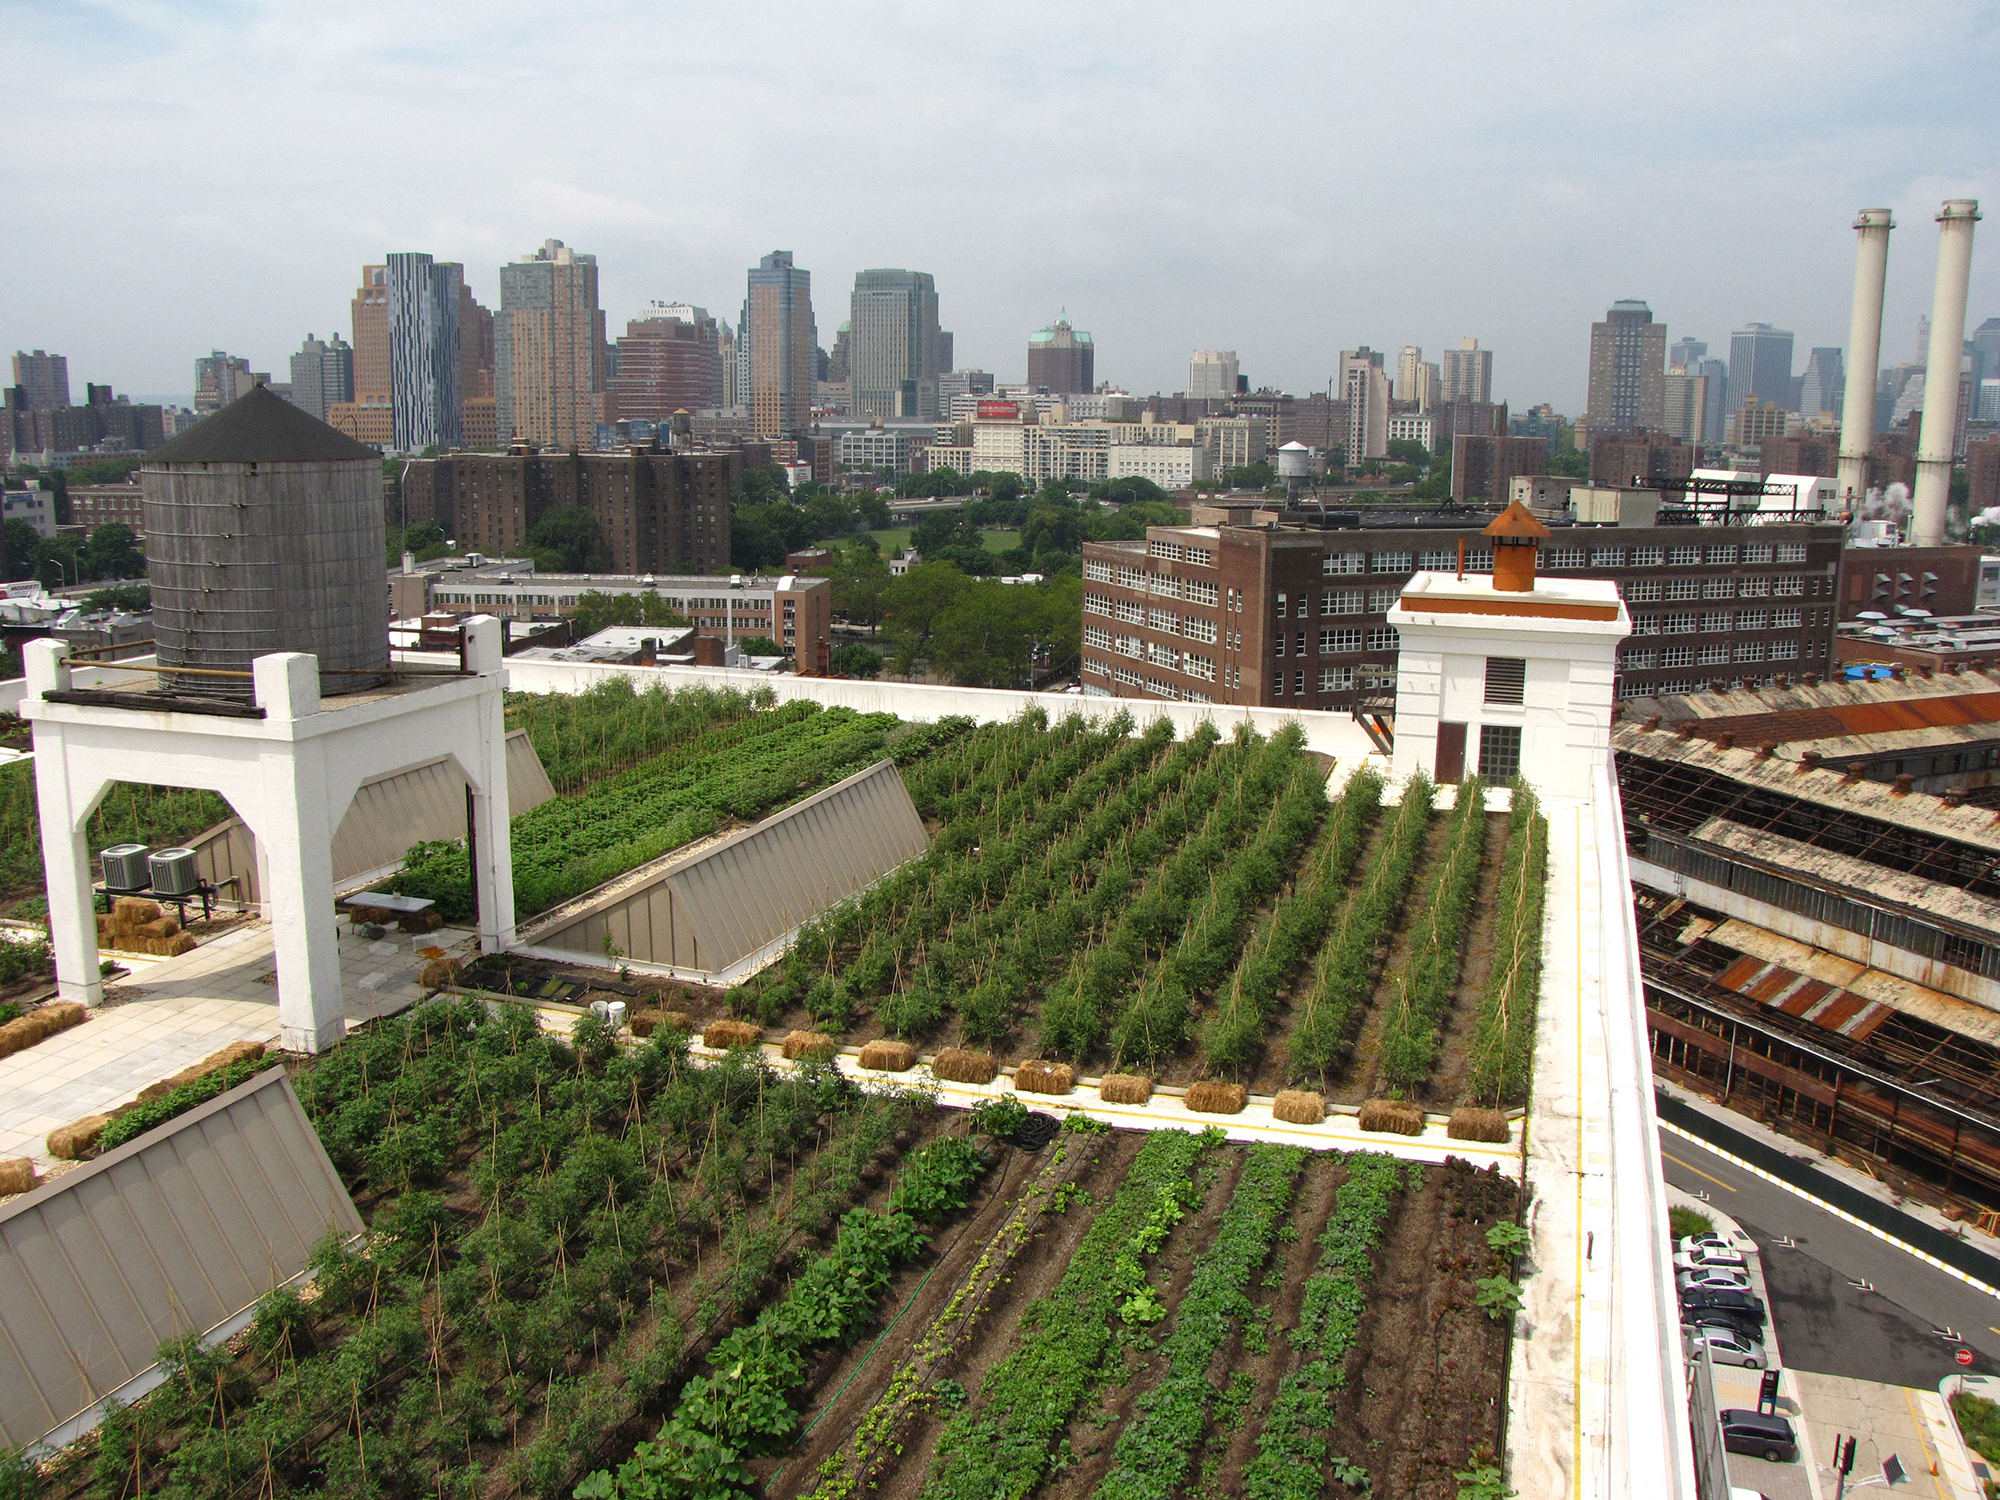 Brooklyn Grange farm covers 5.6 acres of rooftop space